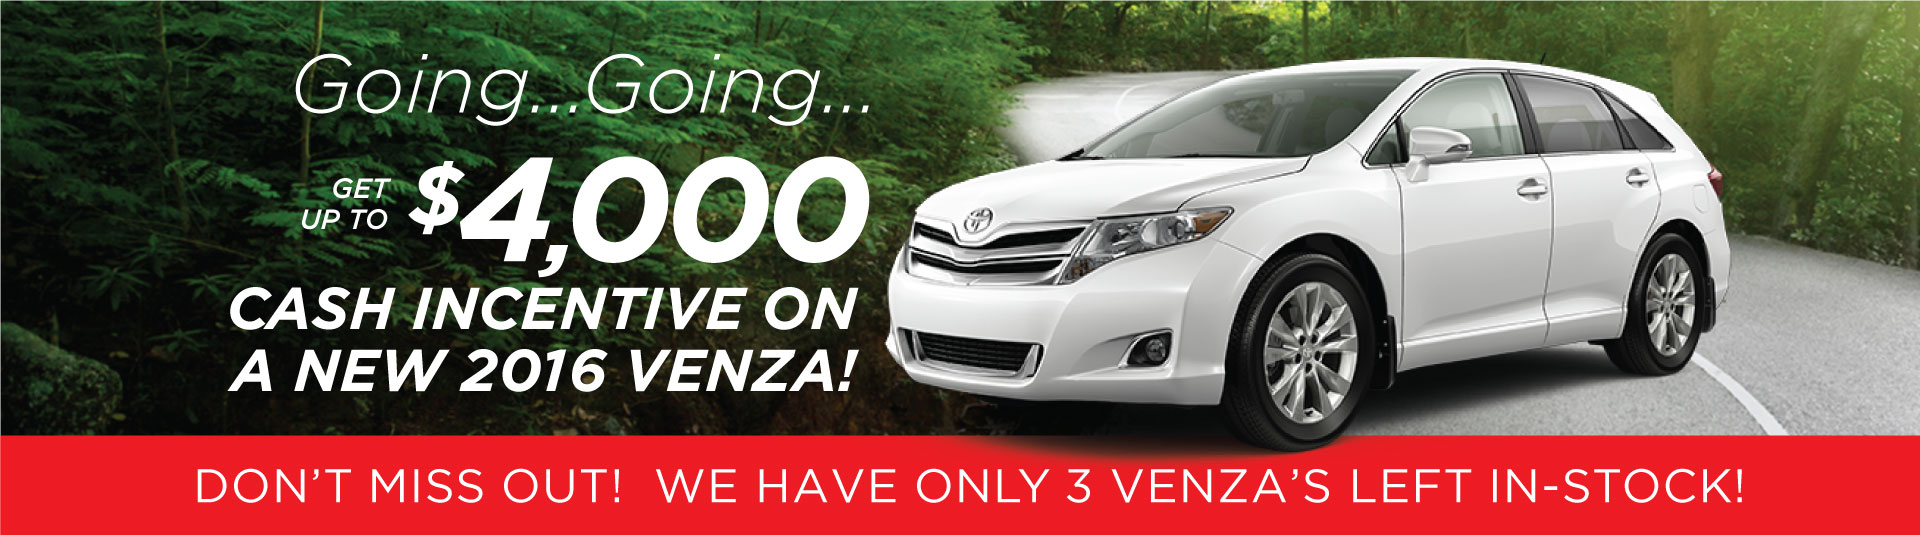 New Venza Clearout Offer